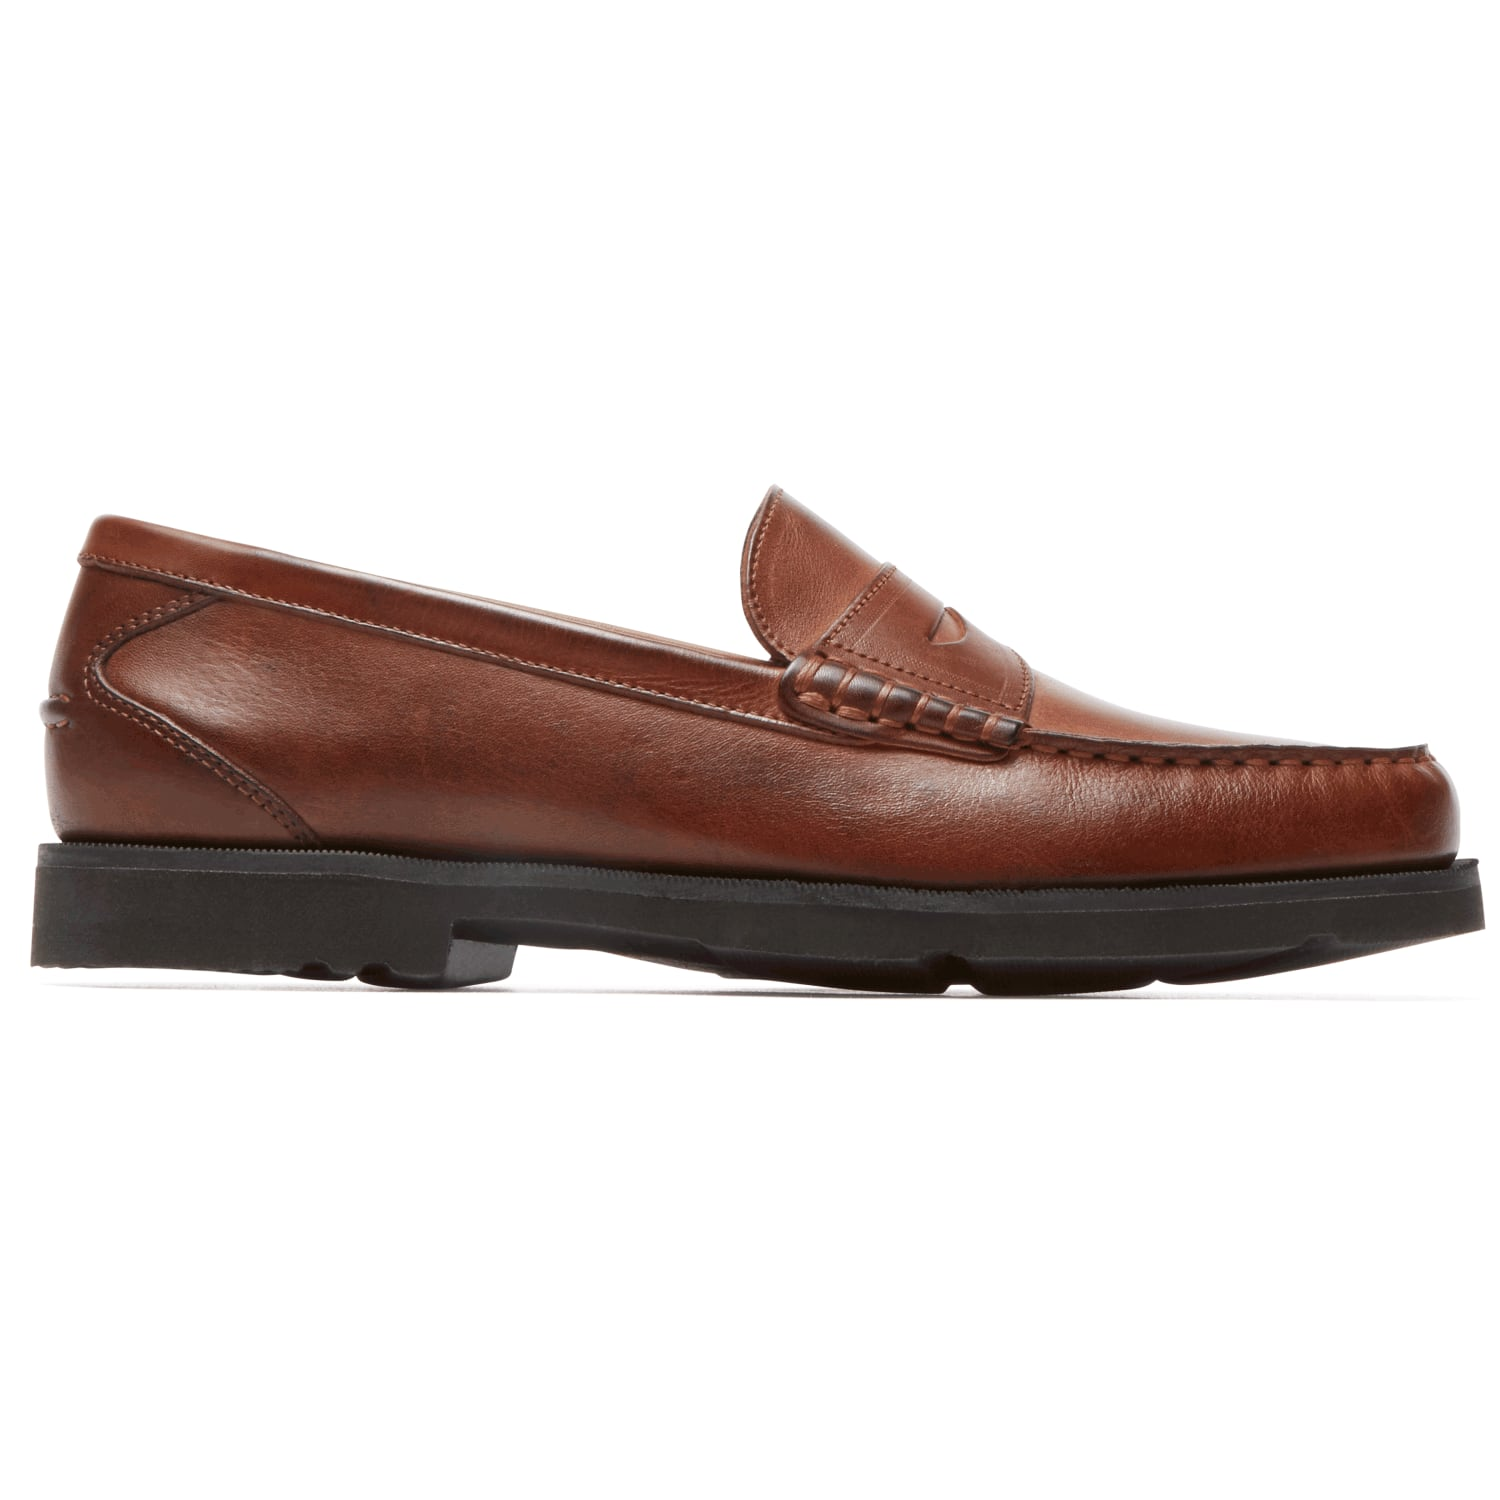 Rockport Flash Sale: 2 Pairs of Men's or Women's Shoes $99 or Extra 40% Off Men's and Women's Boots + Free Shipping (12/11 Only)